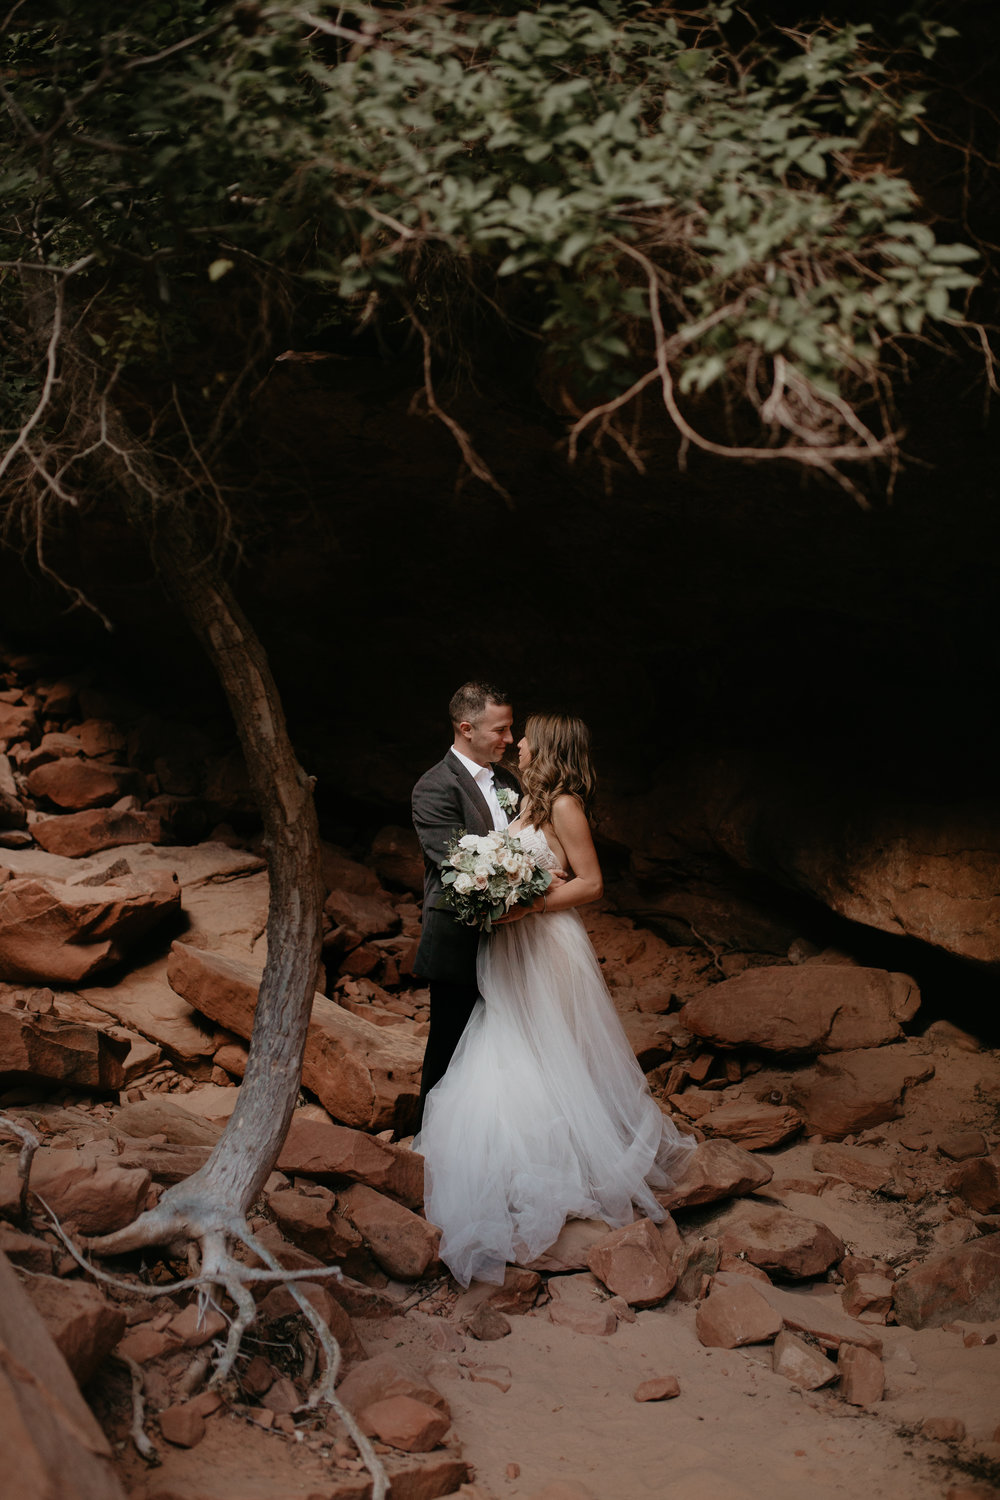 nicole-daacke-photography-zion-national-park-elopement-photographer-canyon-overlook-trail-elope-hiking-adventure-wedding-photos-fall-utah-red-rock-canyon-stgeorge-eloping-photographer-31.jpg